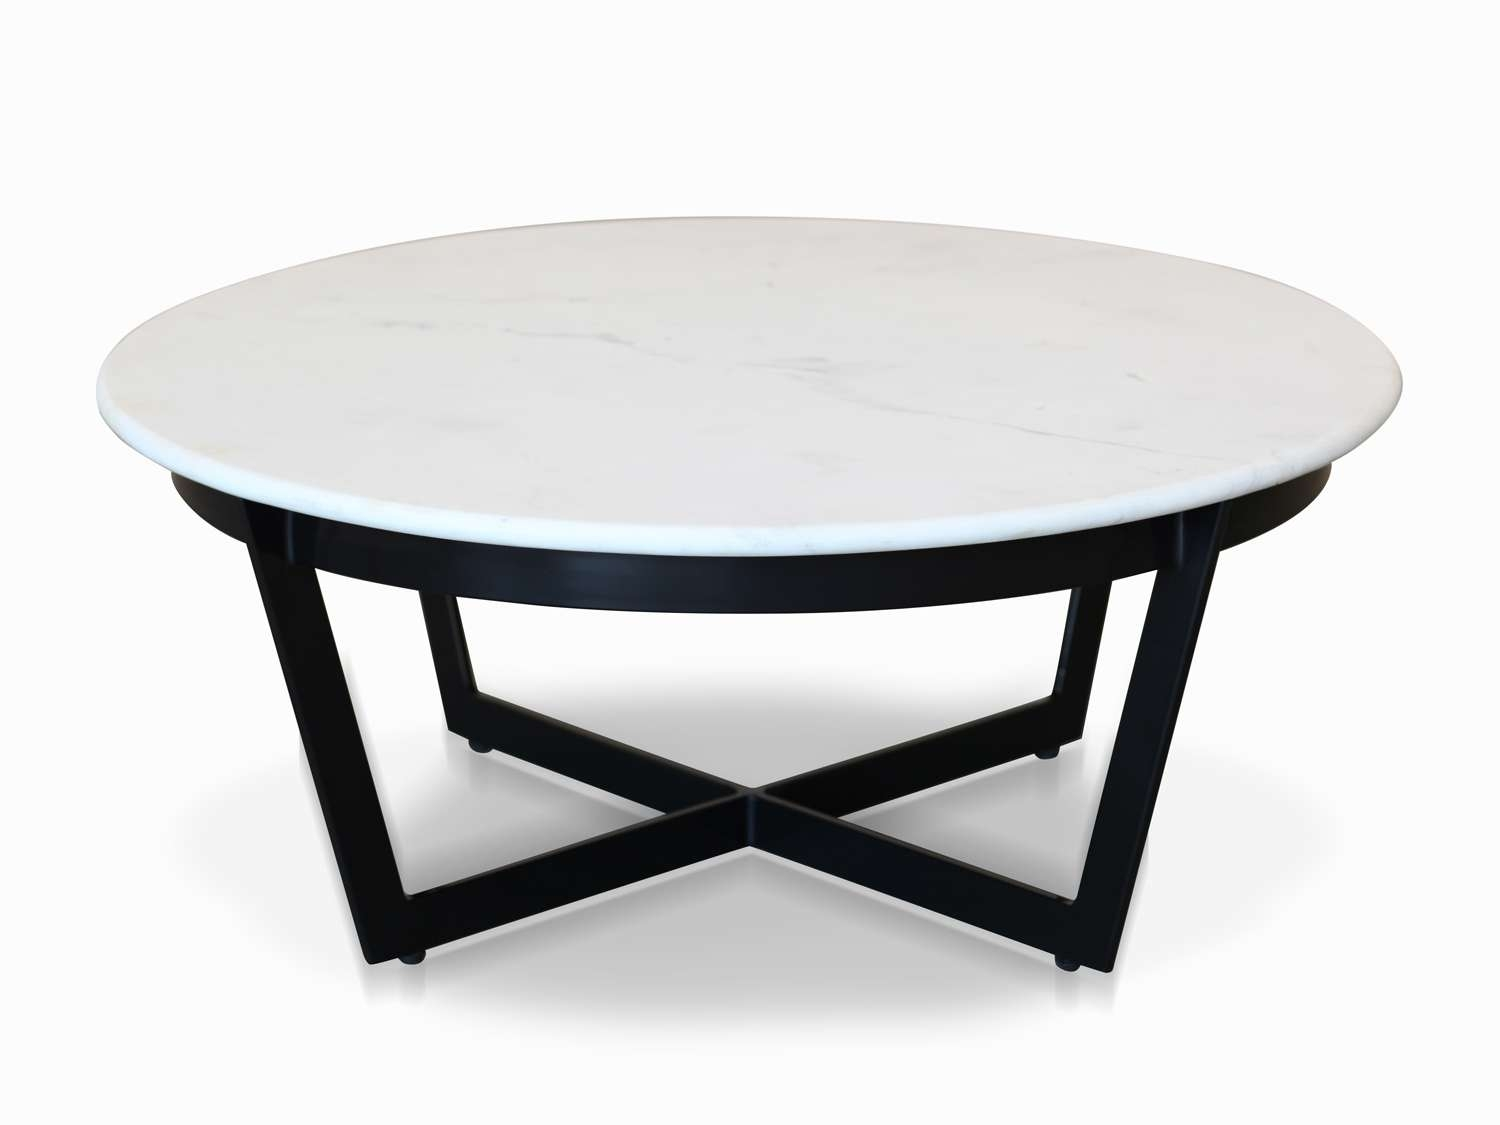 Fashionable Marble Round Coffee Tables In Round Marble Coffee Table (View 10 of 20)